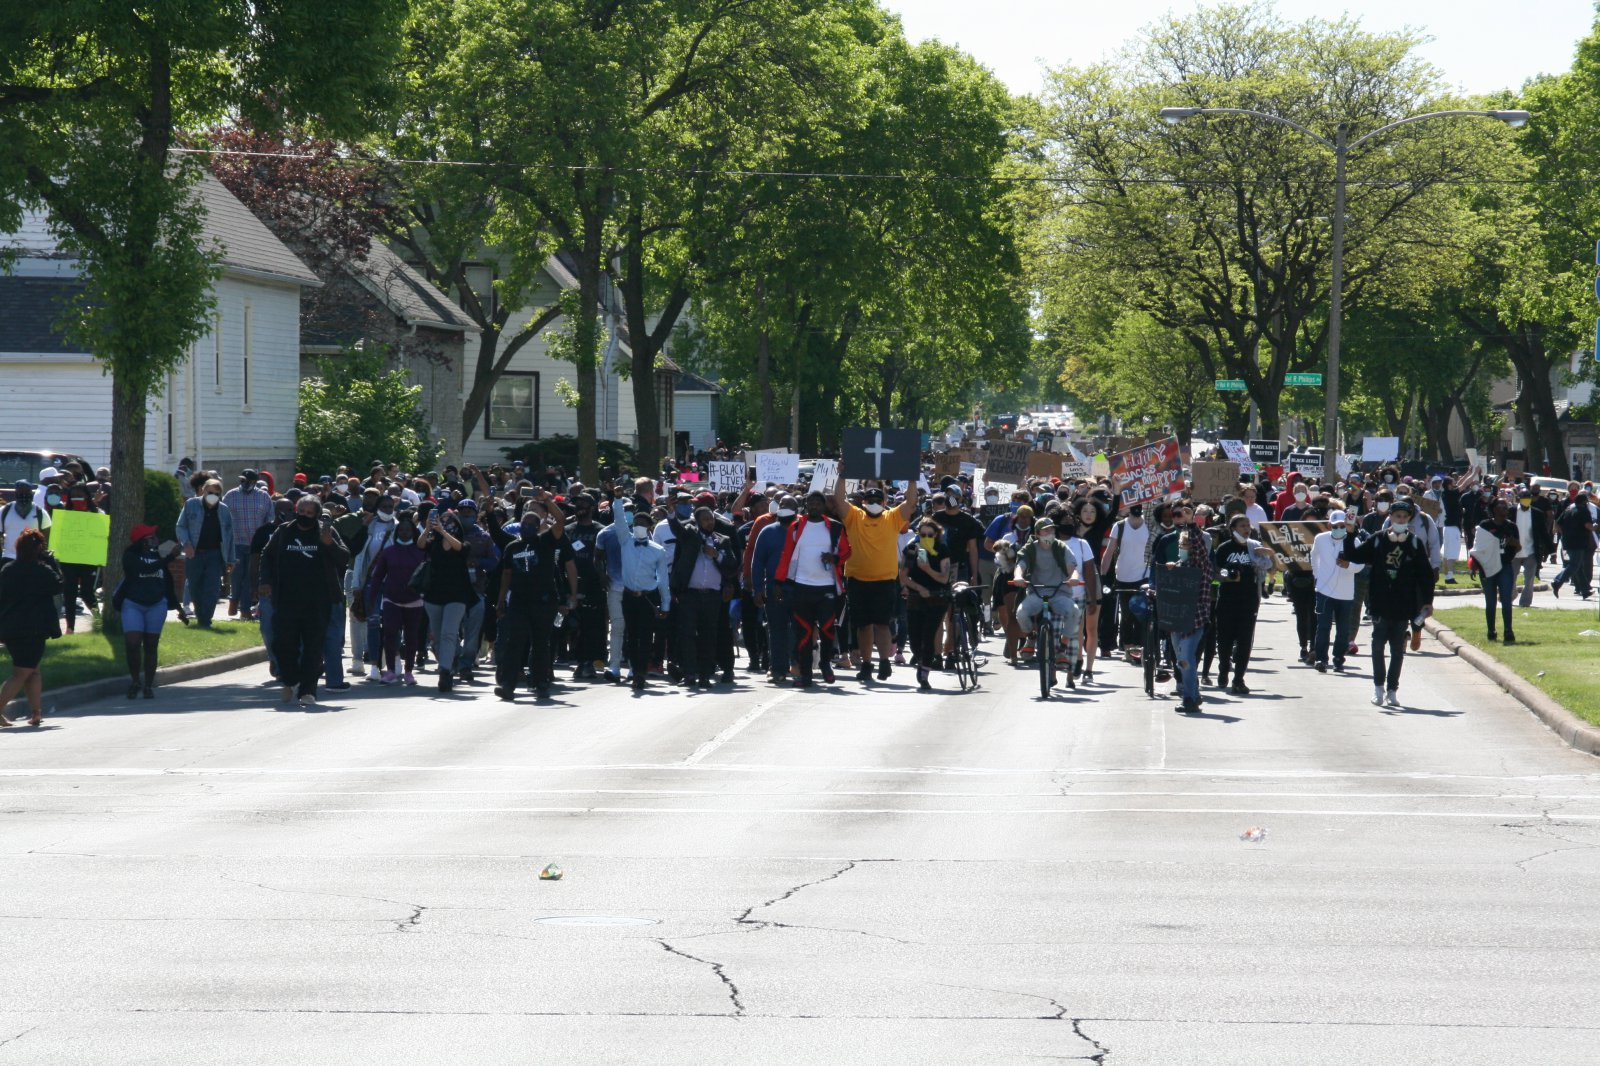 Marching East on Locust